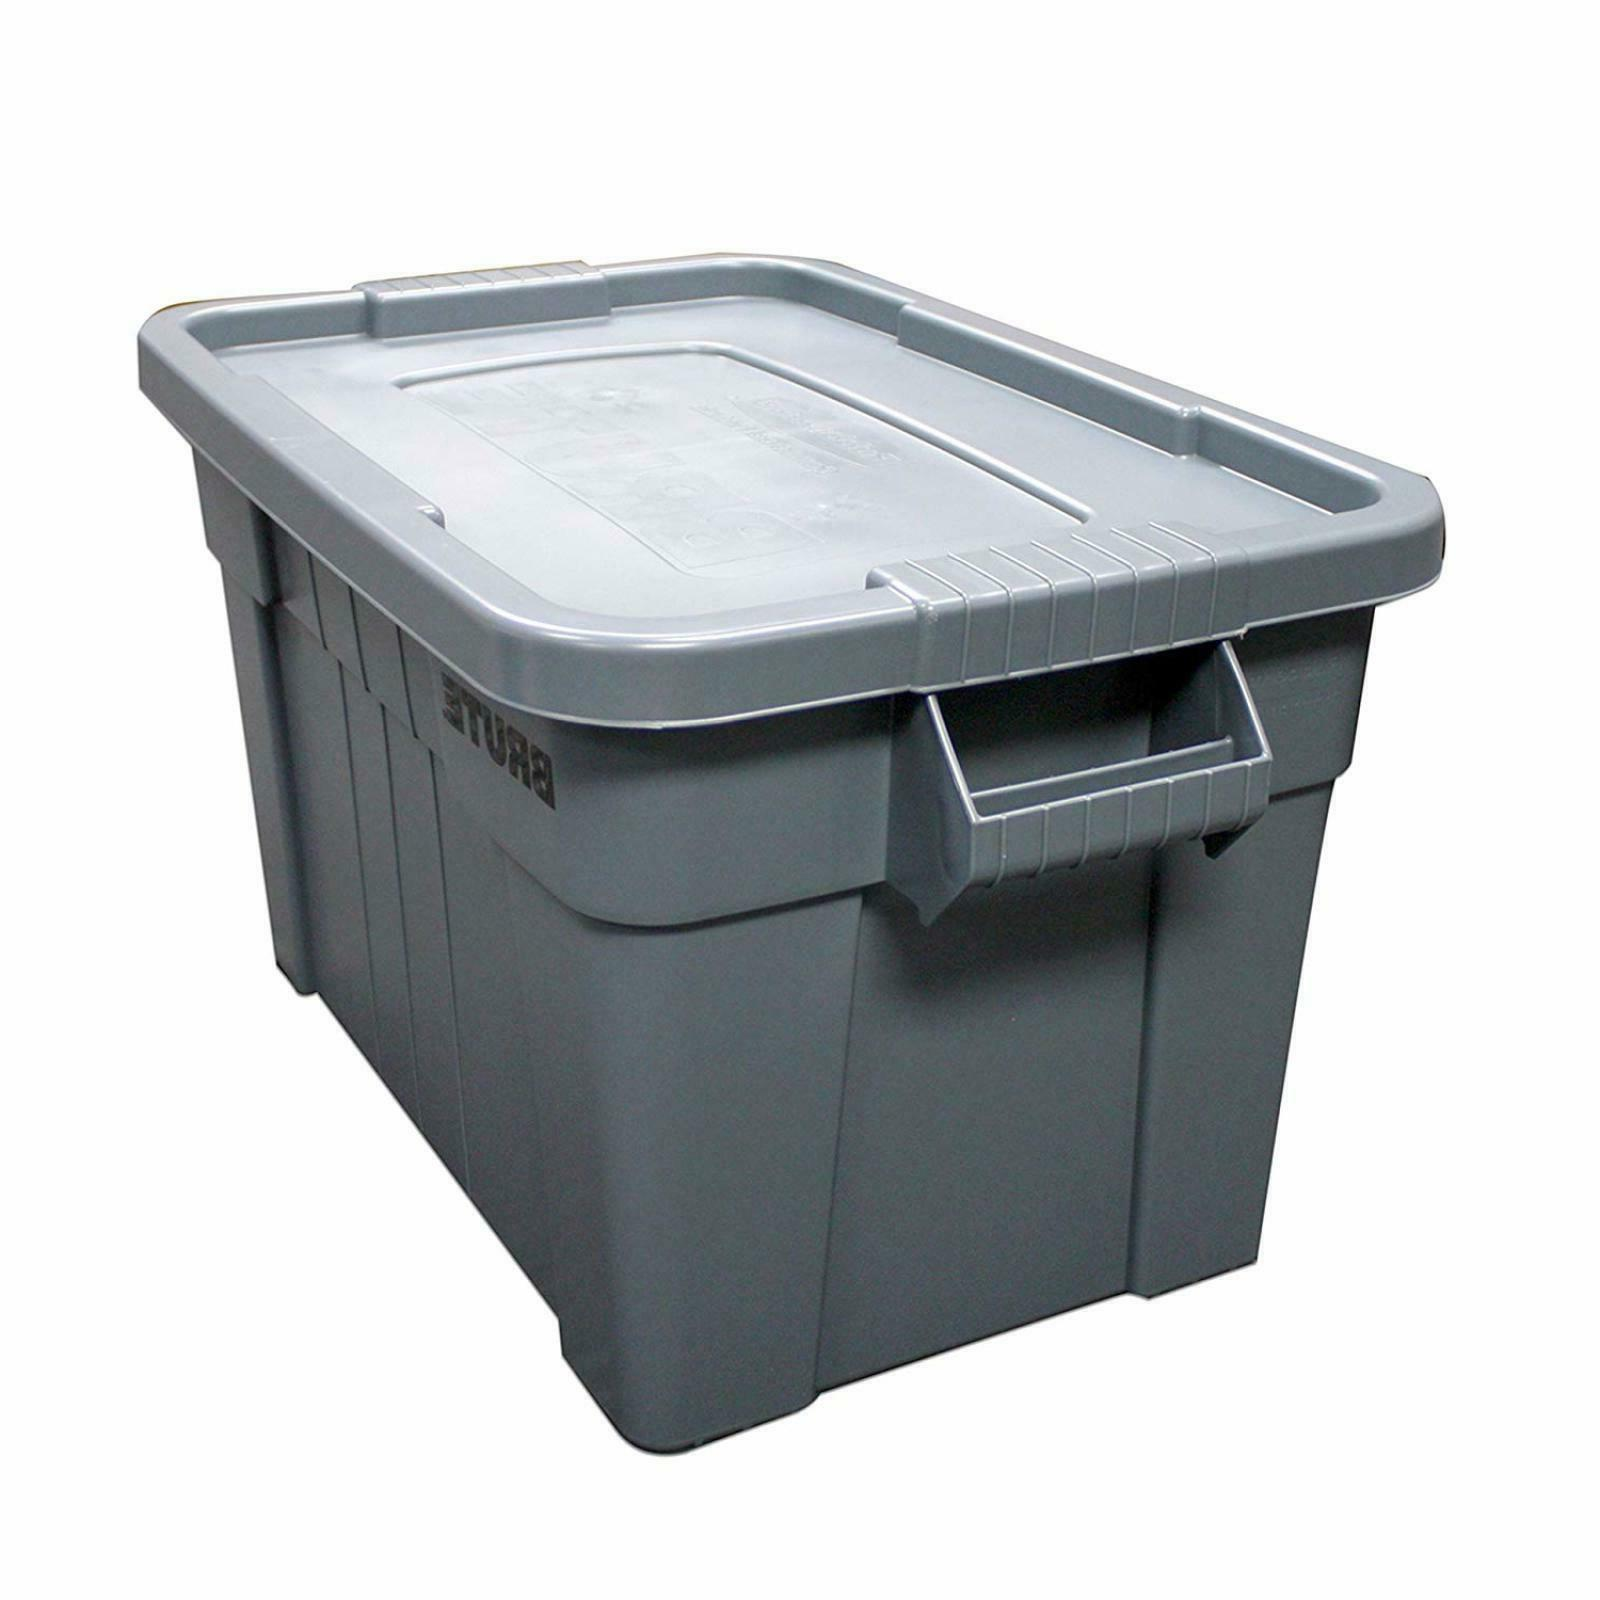 Rubbermaid with Lid,